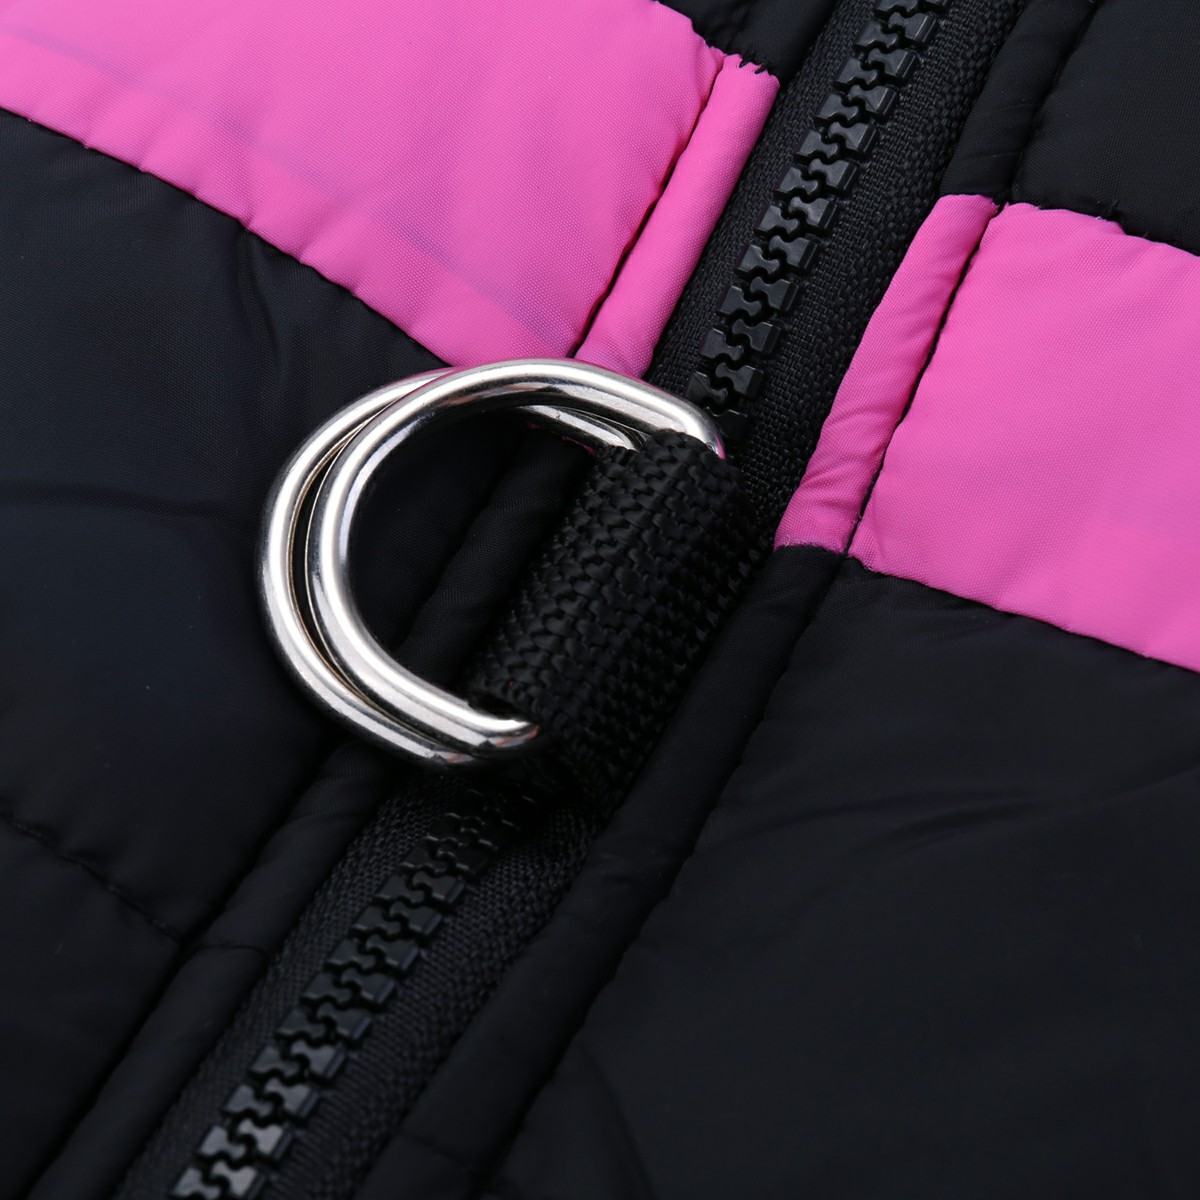 Pet Puppy Dog Warm Insulated Padded Coat Thick Winter Puffer Jacket Vest for Pets Size L - Pink